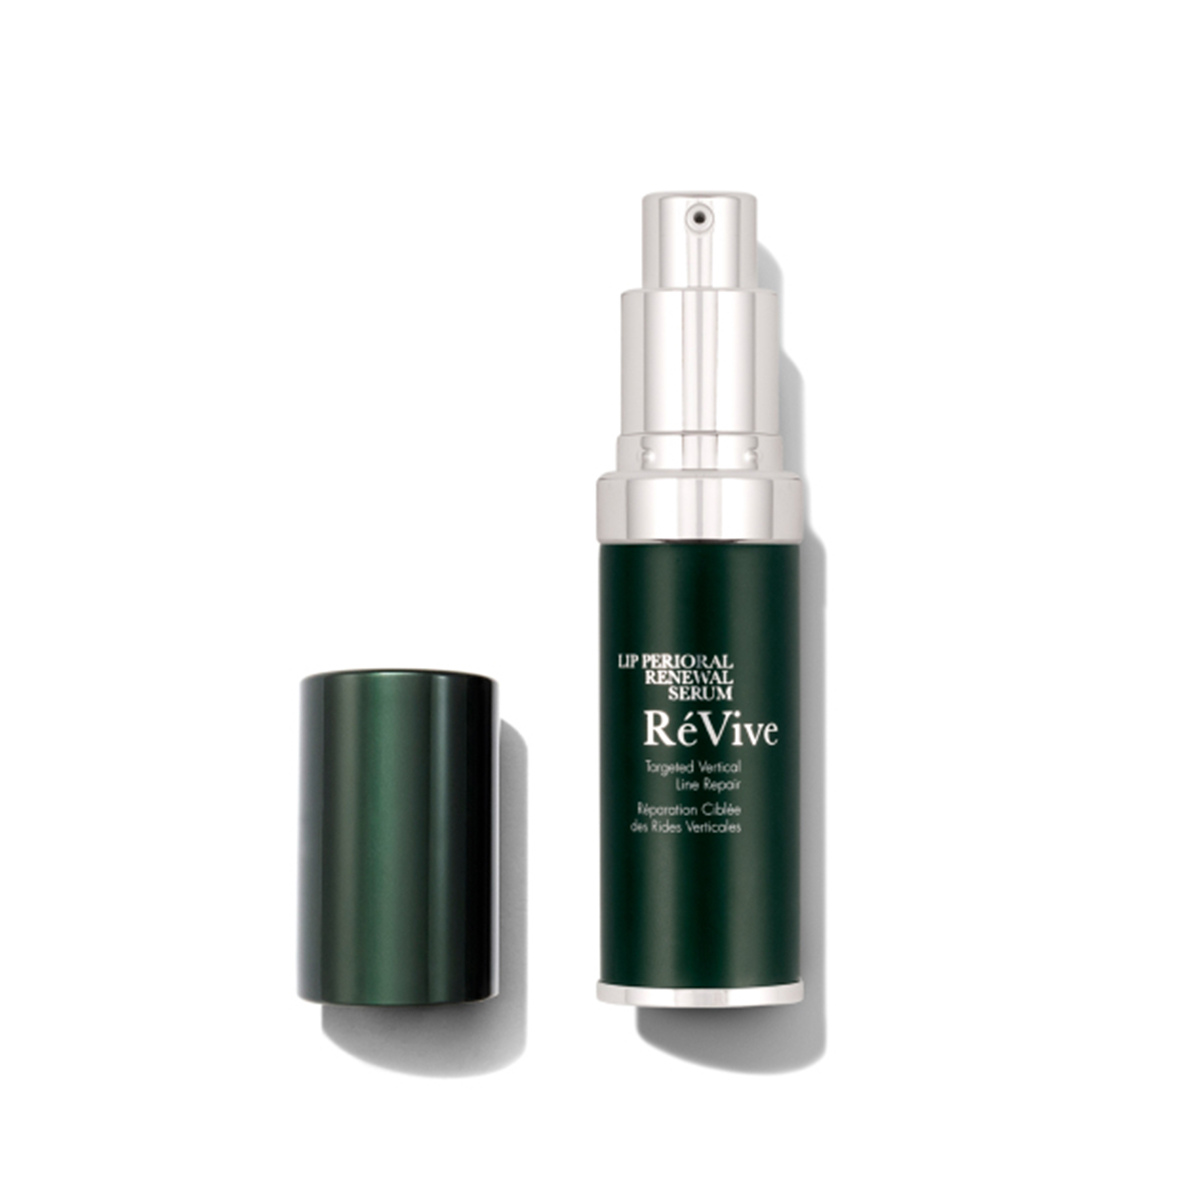 ReVive serum